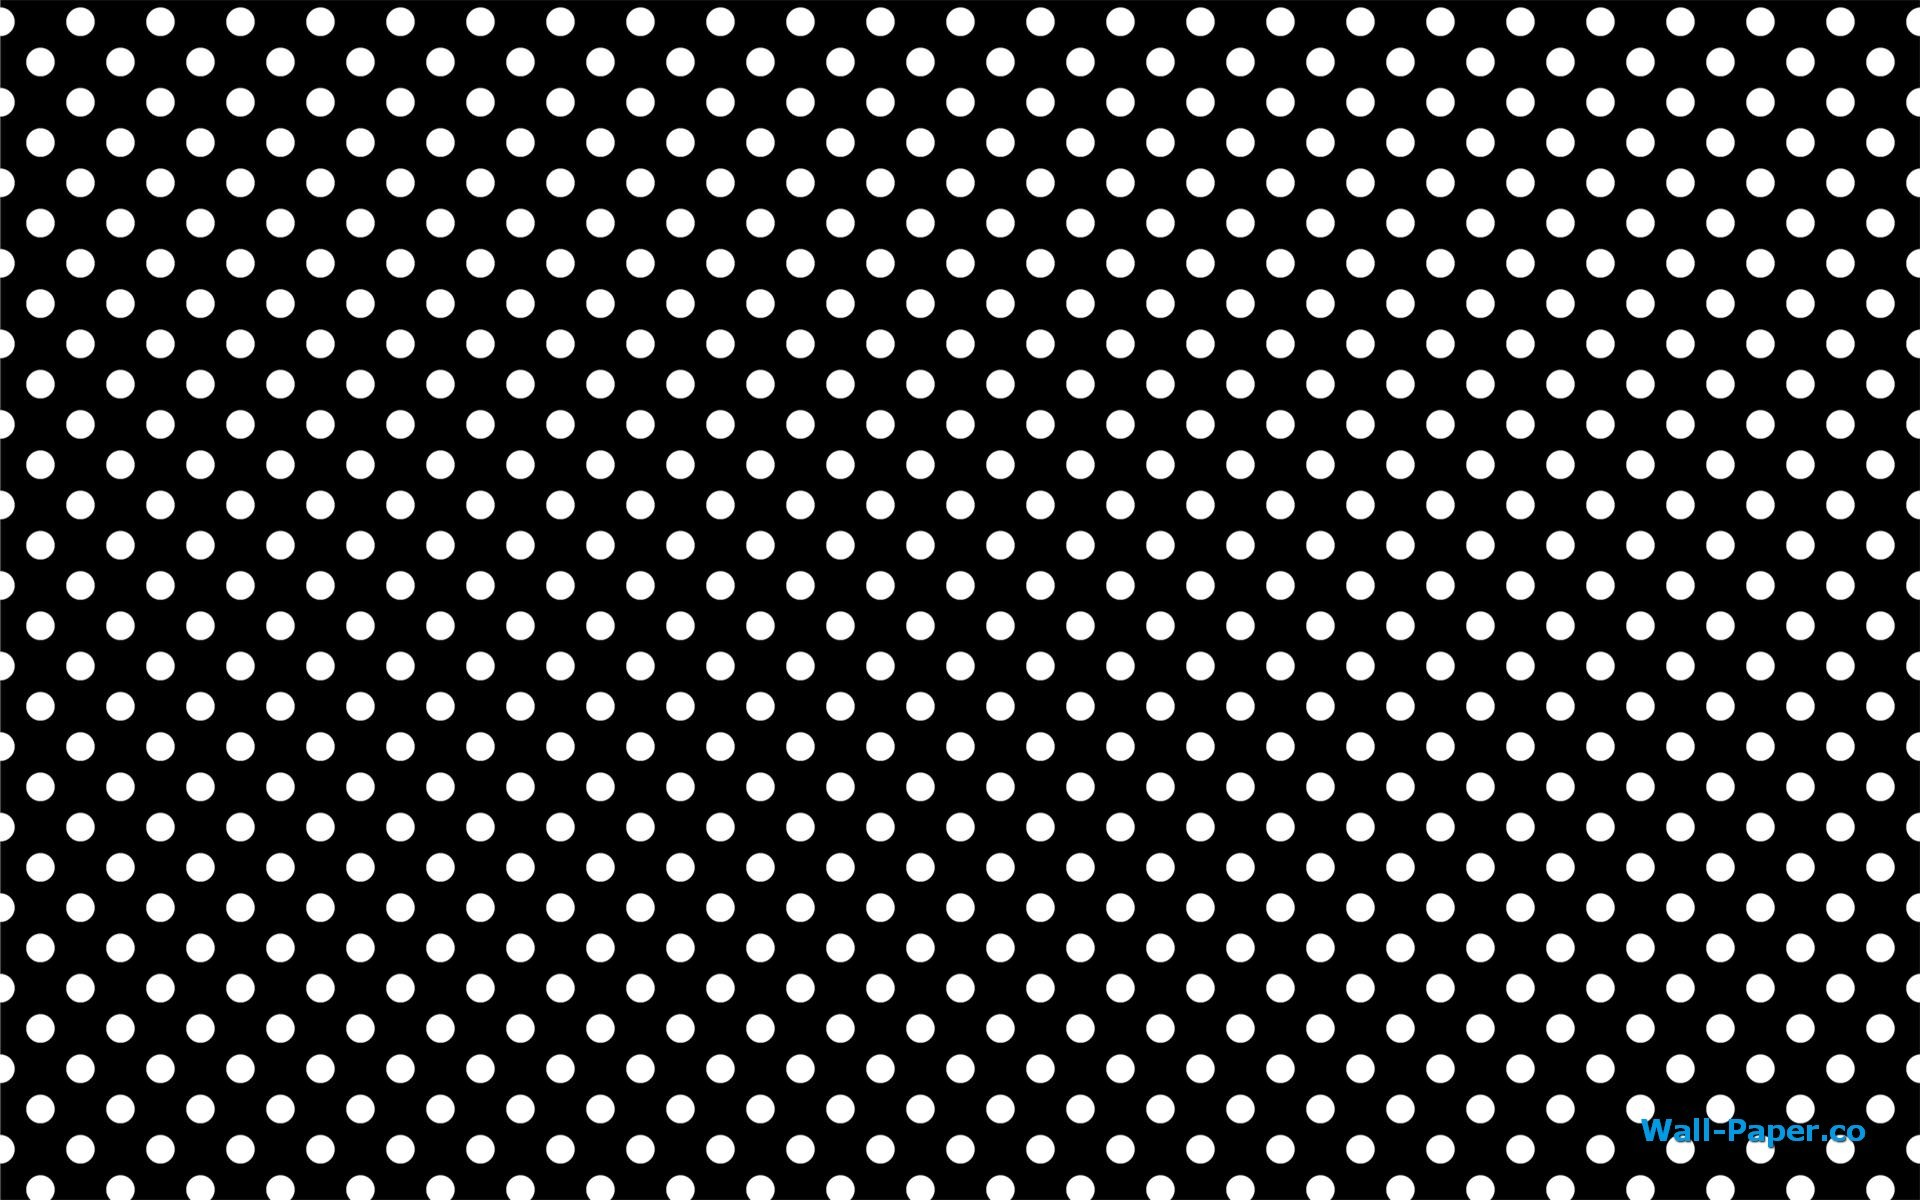 White Dots On Black Background Hd Wallpaper | Wallpaper List